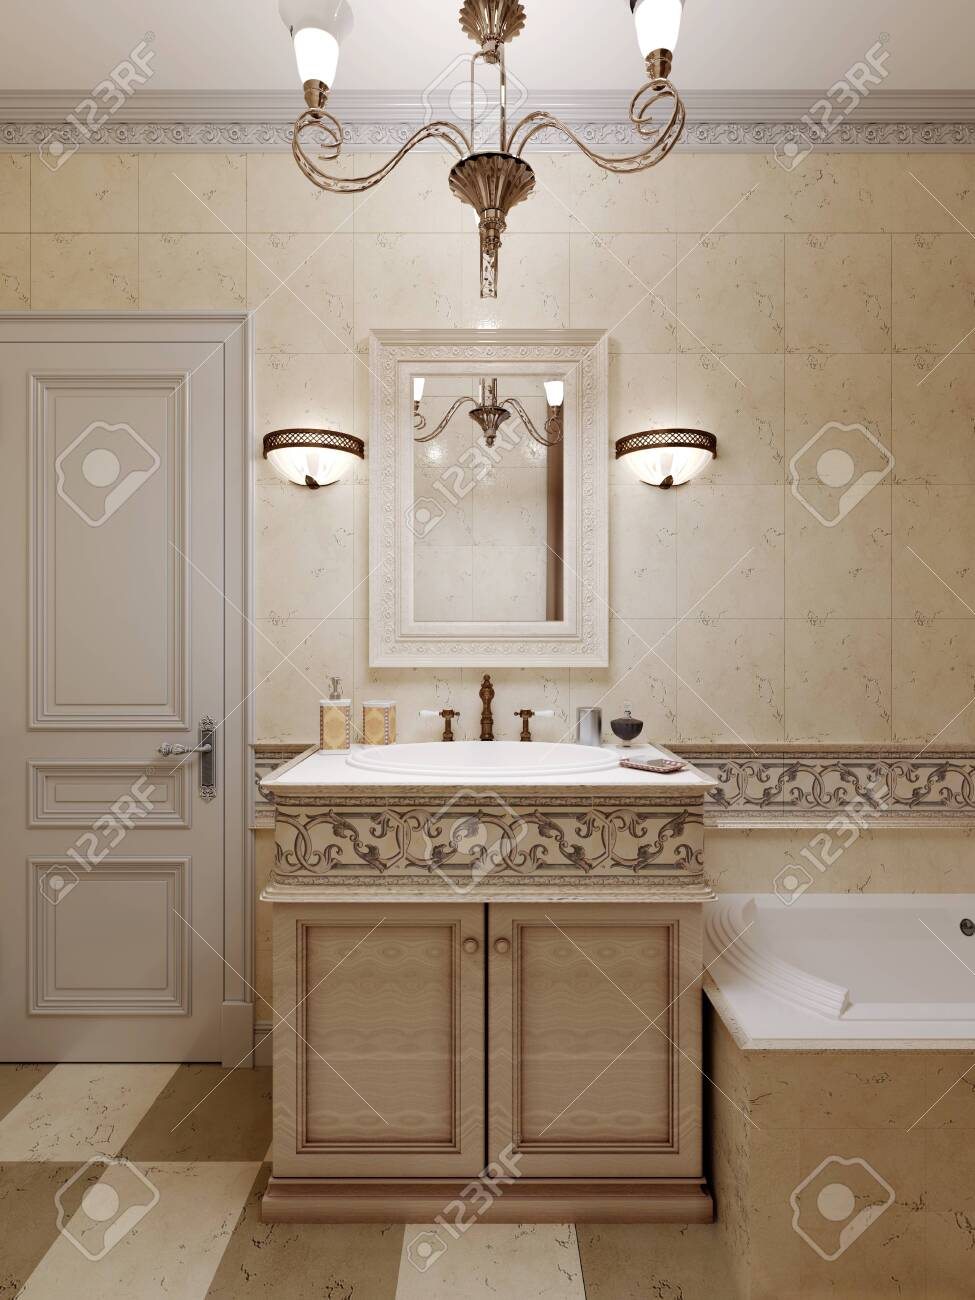 Bathroom In Art Deco Style Beige Tiles On The Walls With Ornament Stock Photo Picture And Royalty Free Image Image 150386500